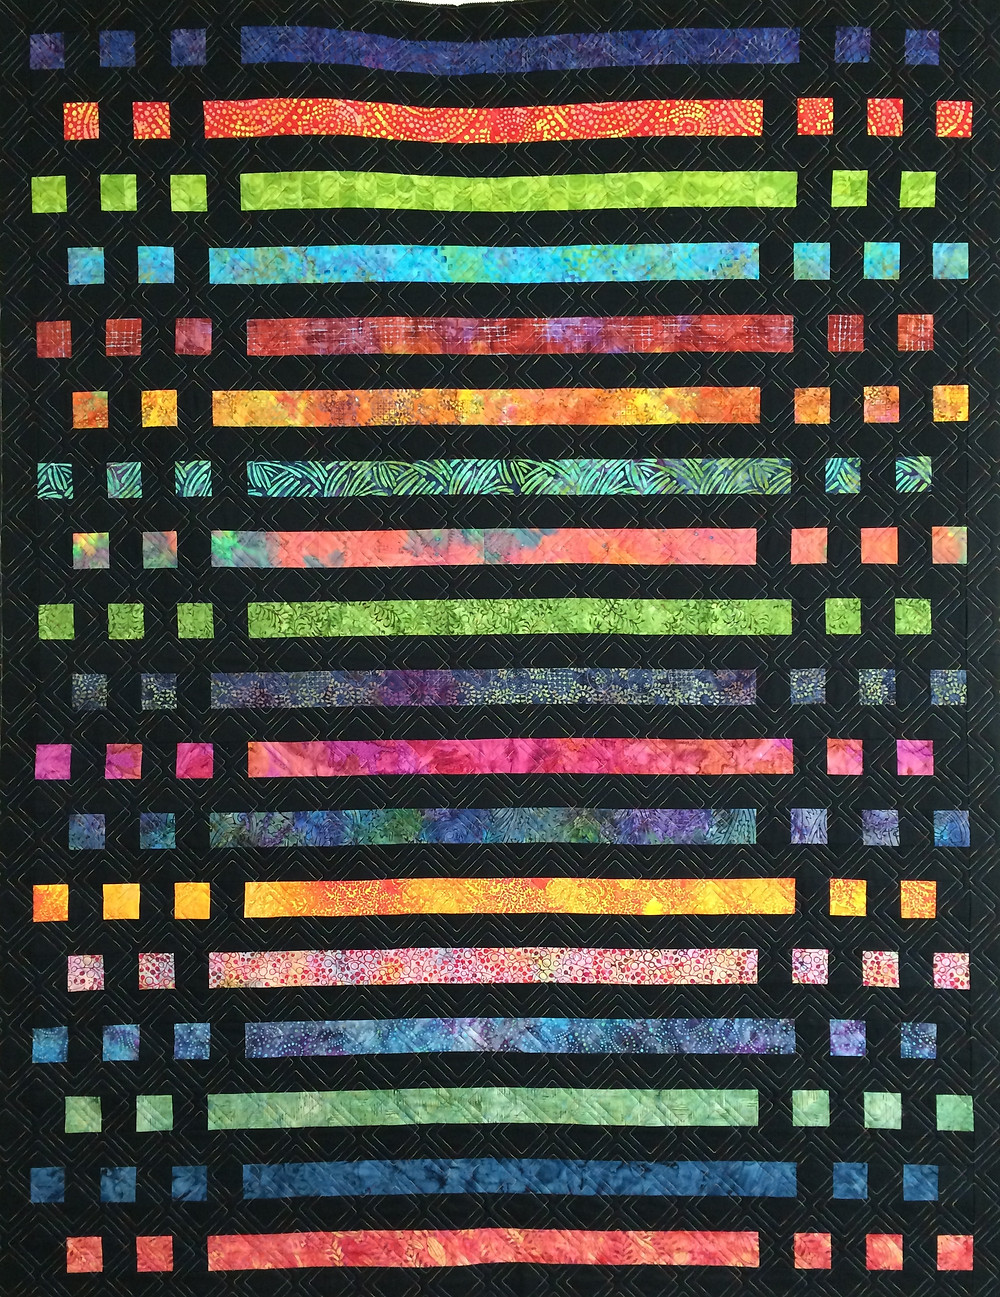 dot dot dash morse code quilt in bright color fabrics